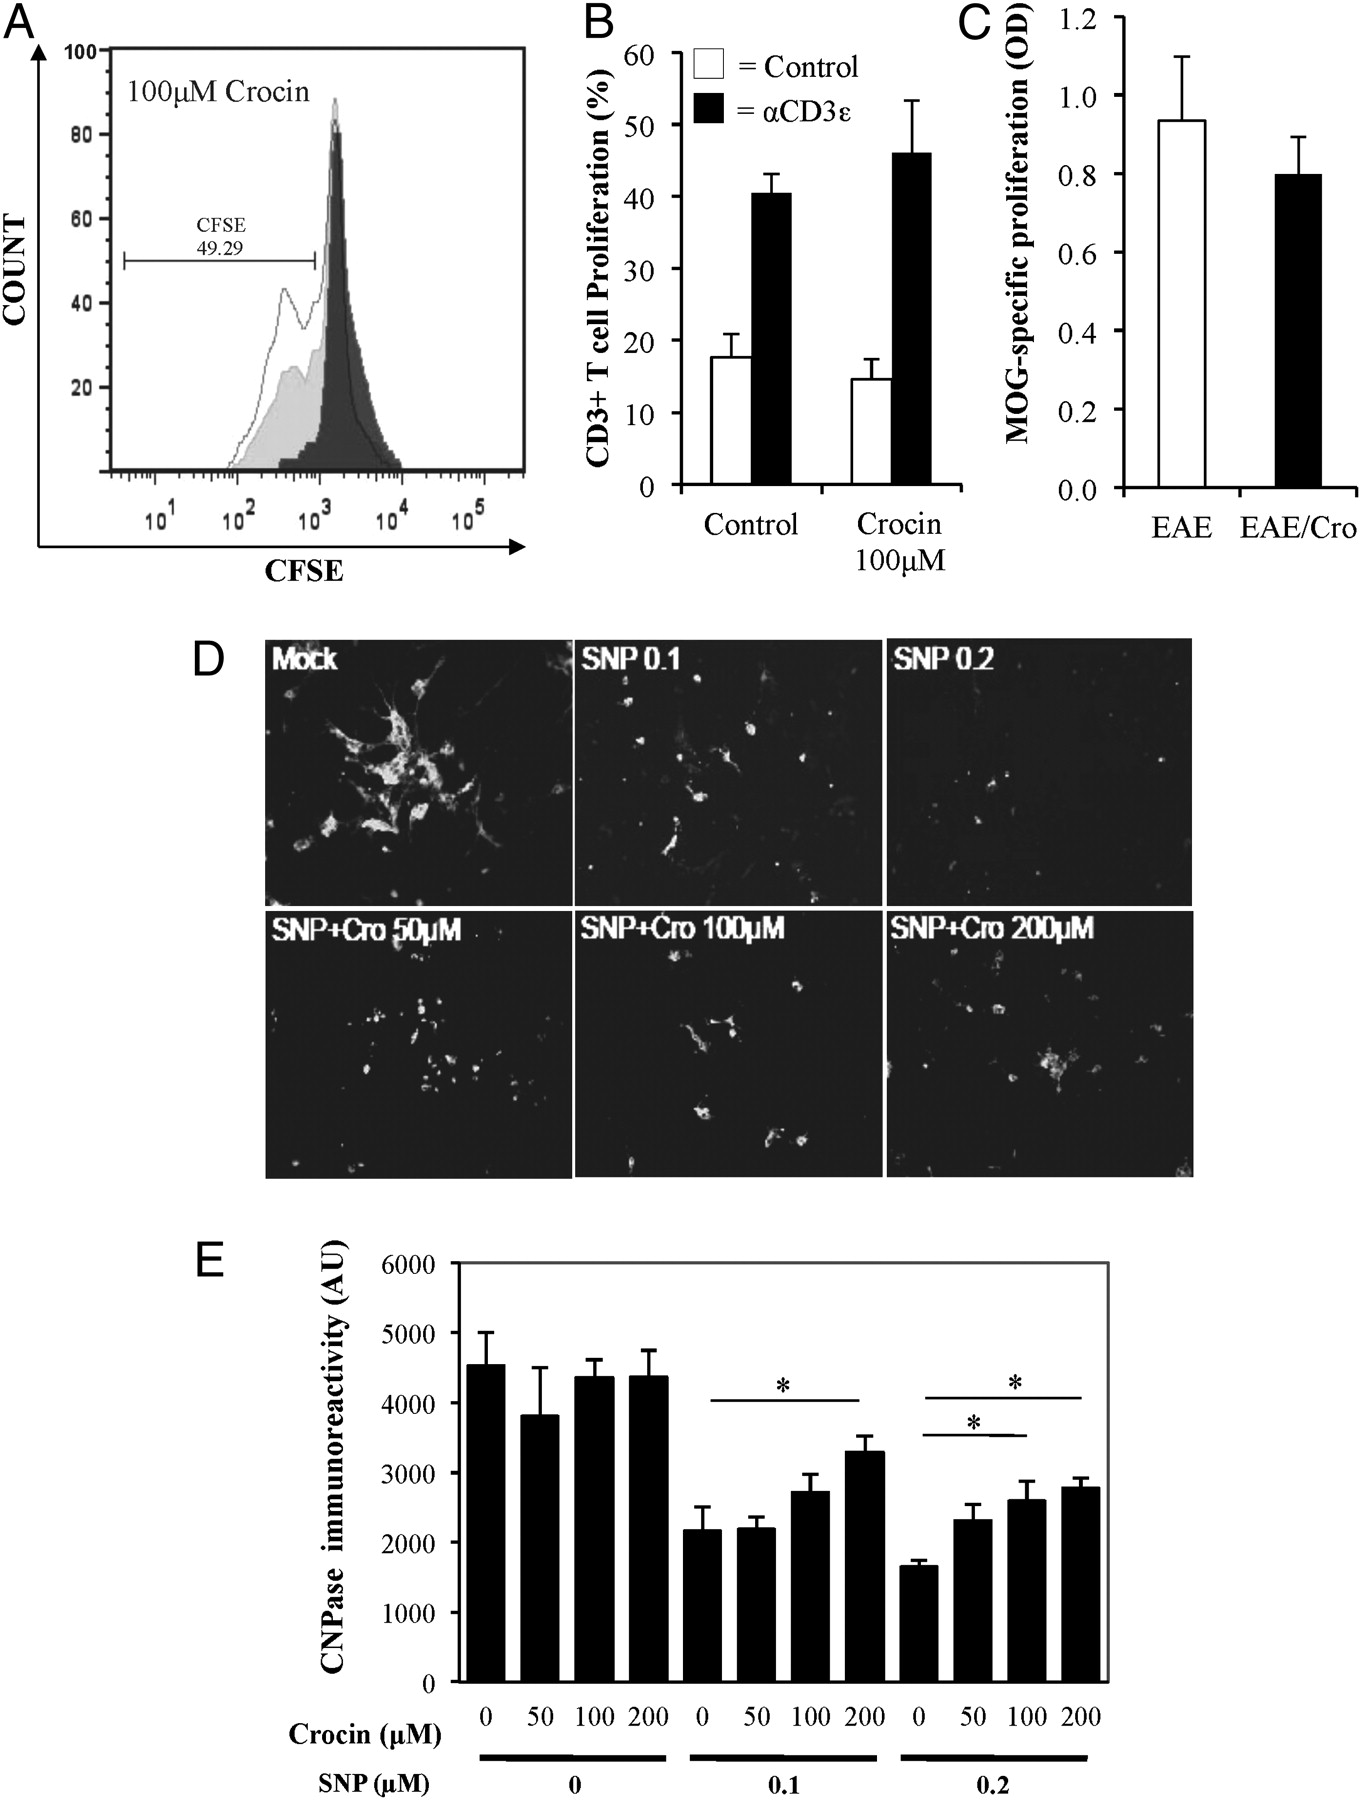 Neuroinflammation And Endoplasmic Reticulum Stress Are Coregulated Basic Controls Of A Cro Download Figure